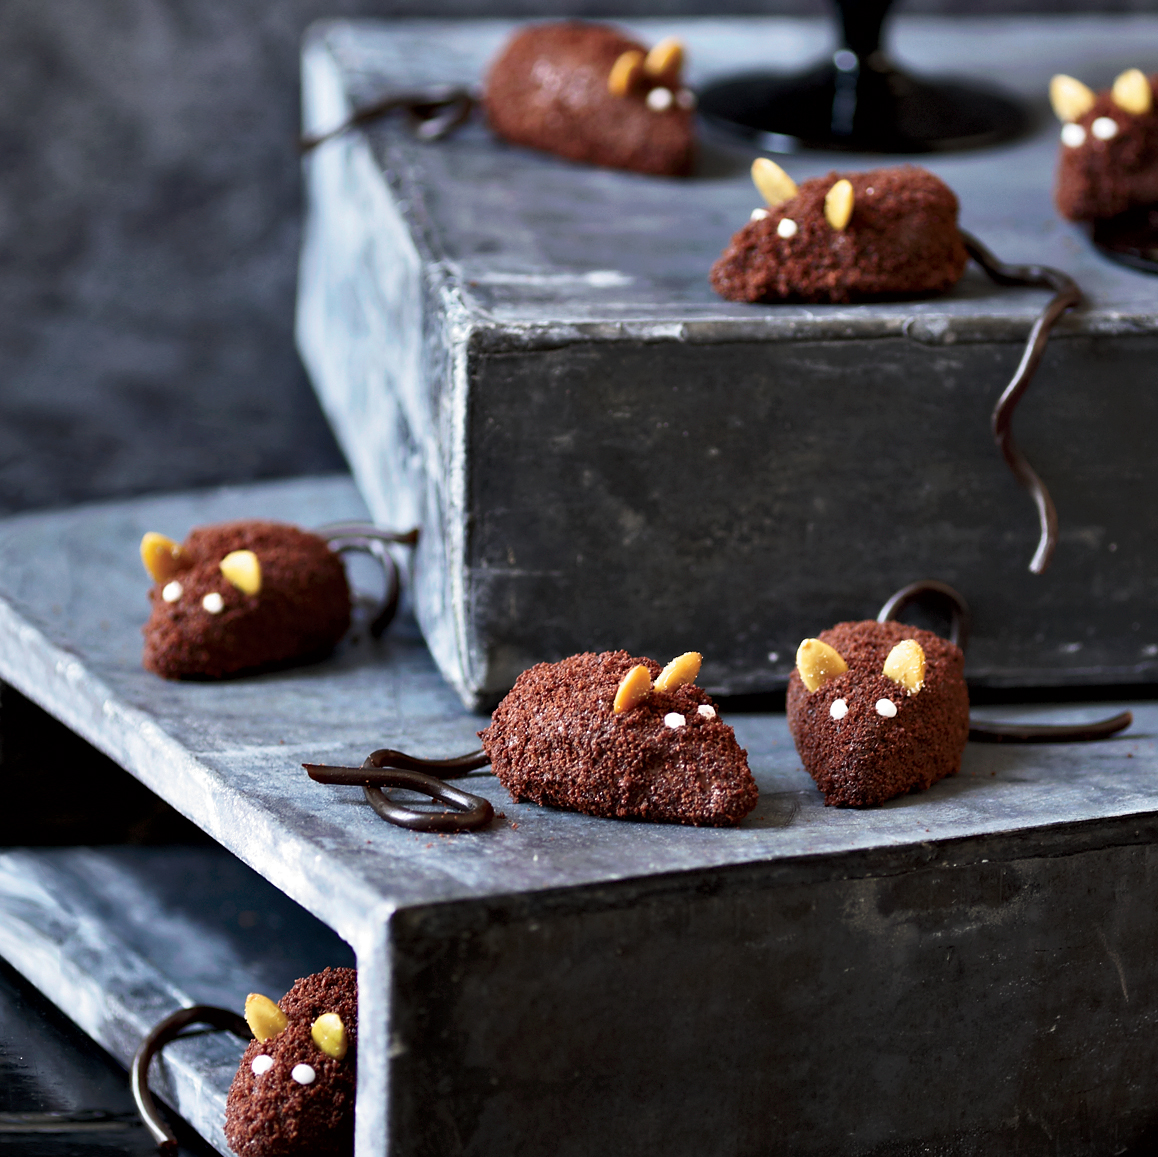 Best Food and Wine Recipes: Chocolate Mice